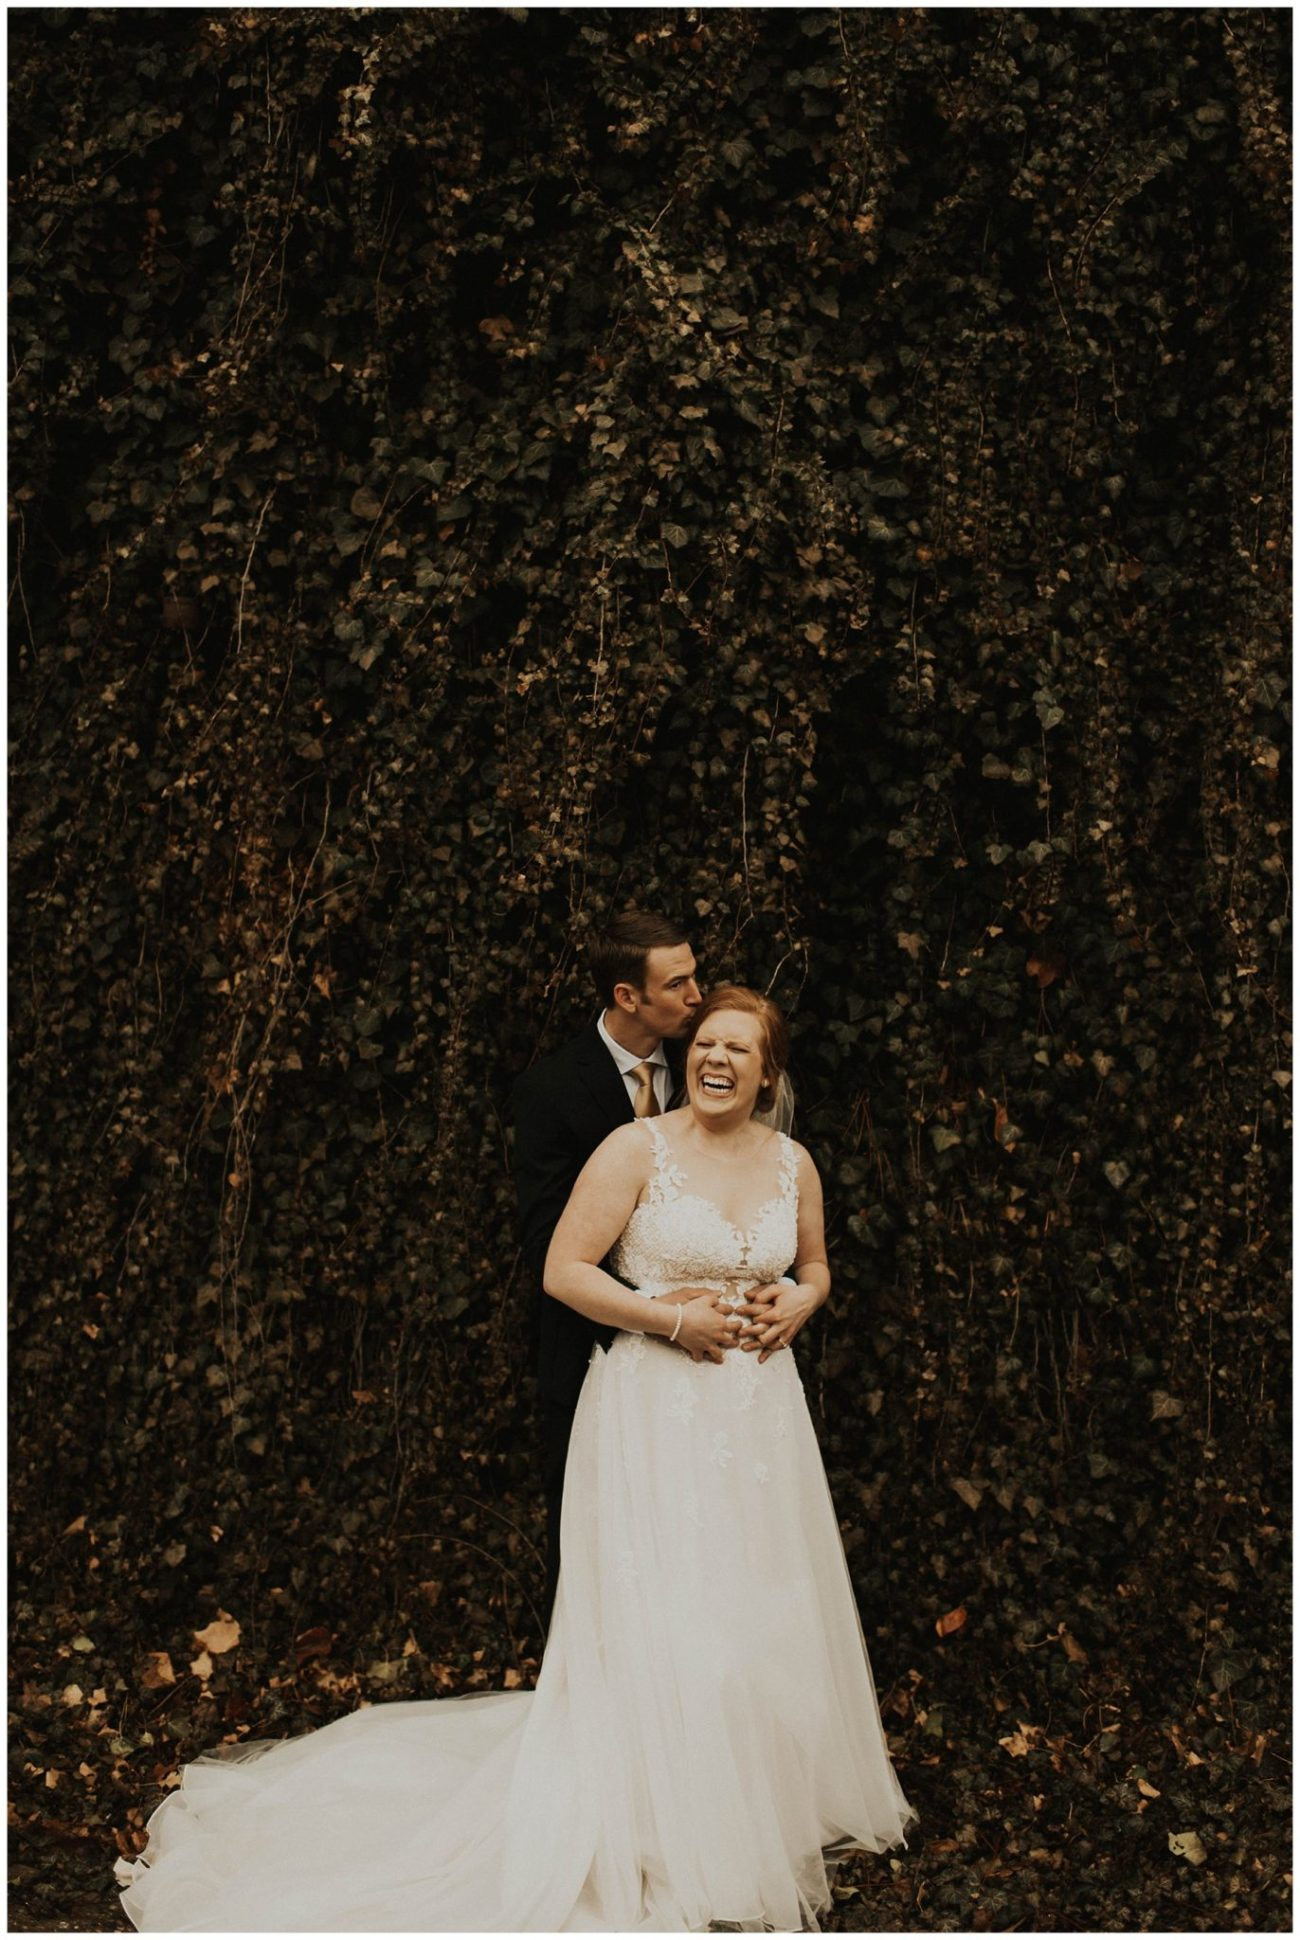 a4921f6a15 Johnny + Eliza // Classic Winter Wedding - Lauren F.otography ...